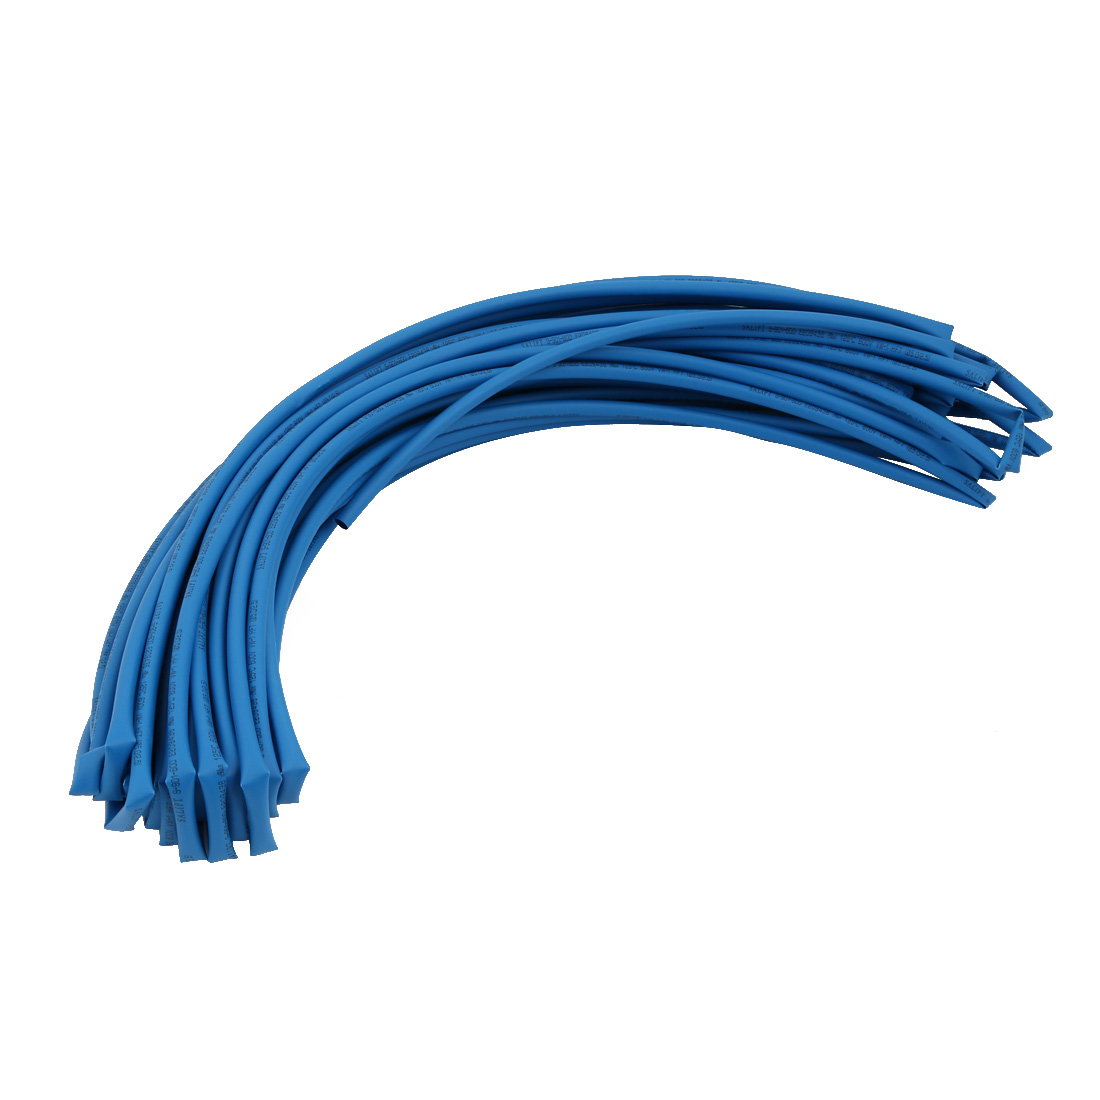 20M 0.2in Inner Dia Polyolefin Flame Retardant Tube Blue for Wire Repairing